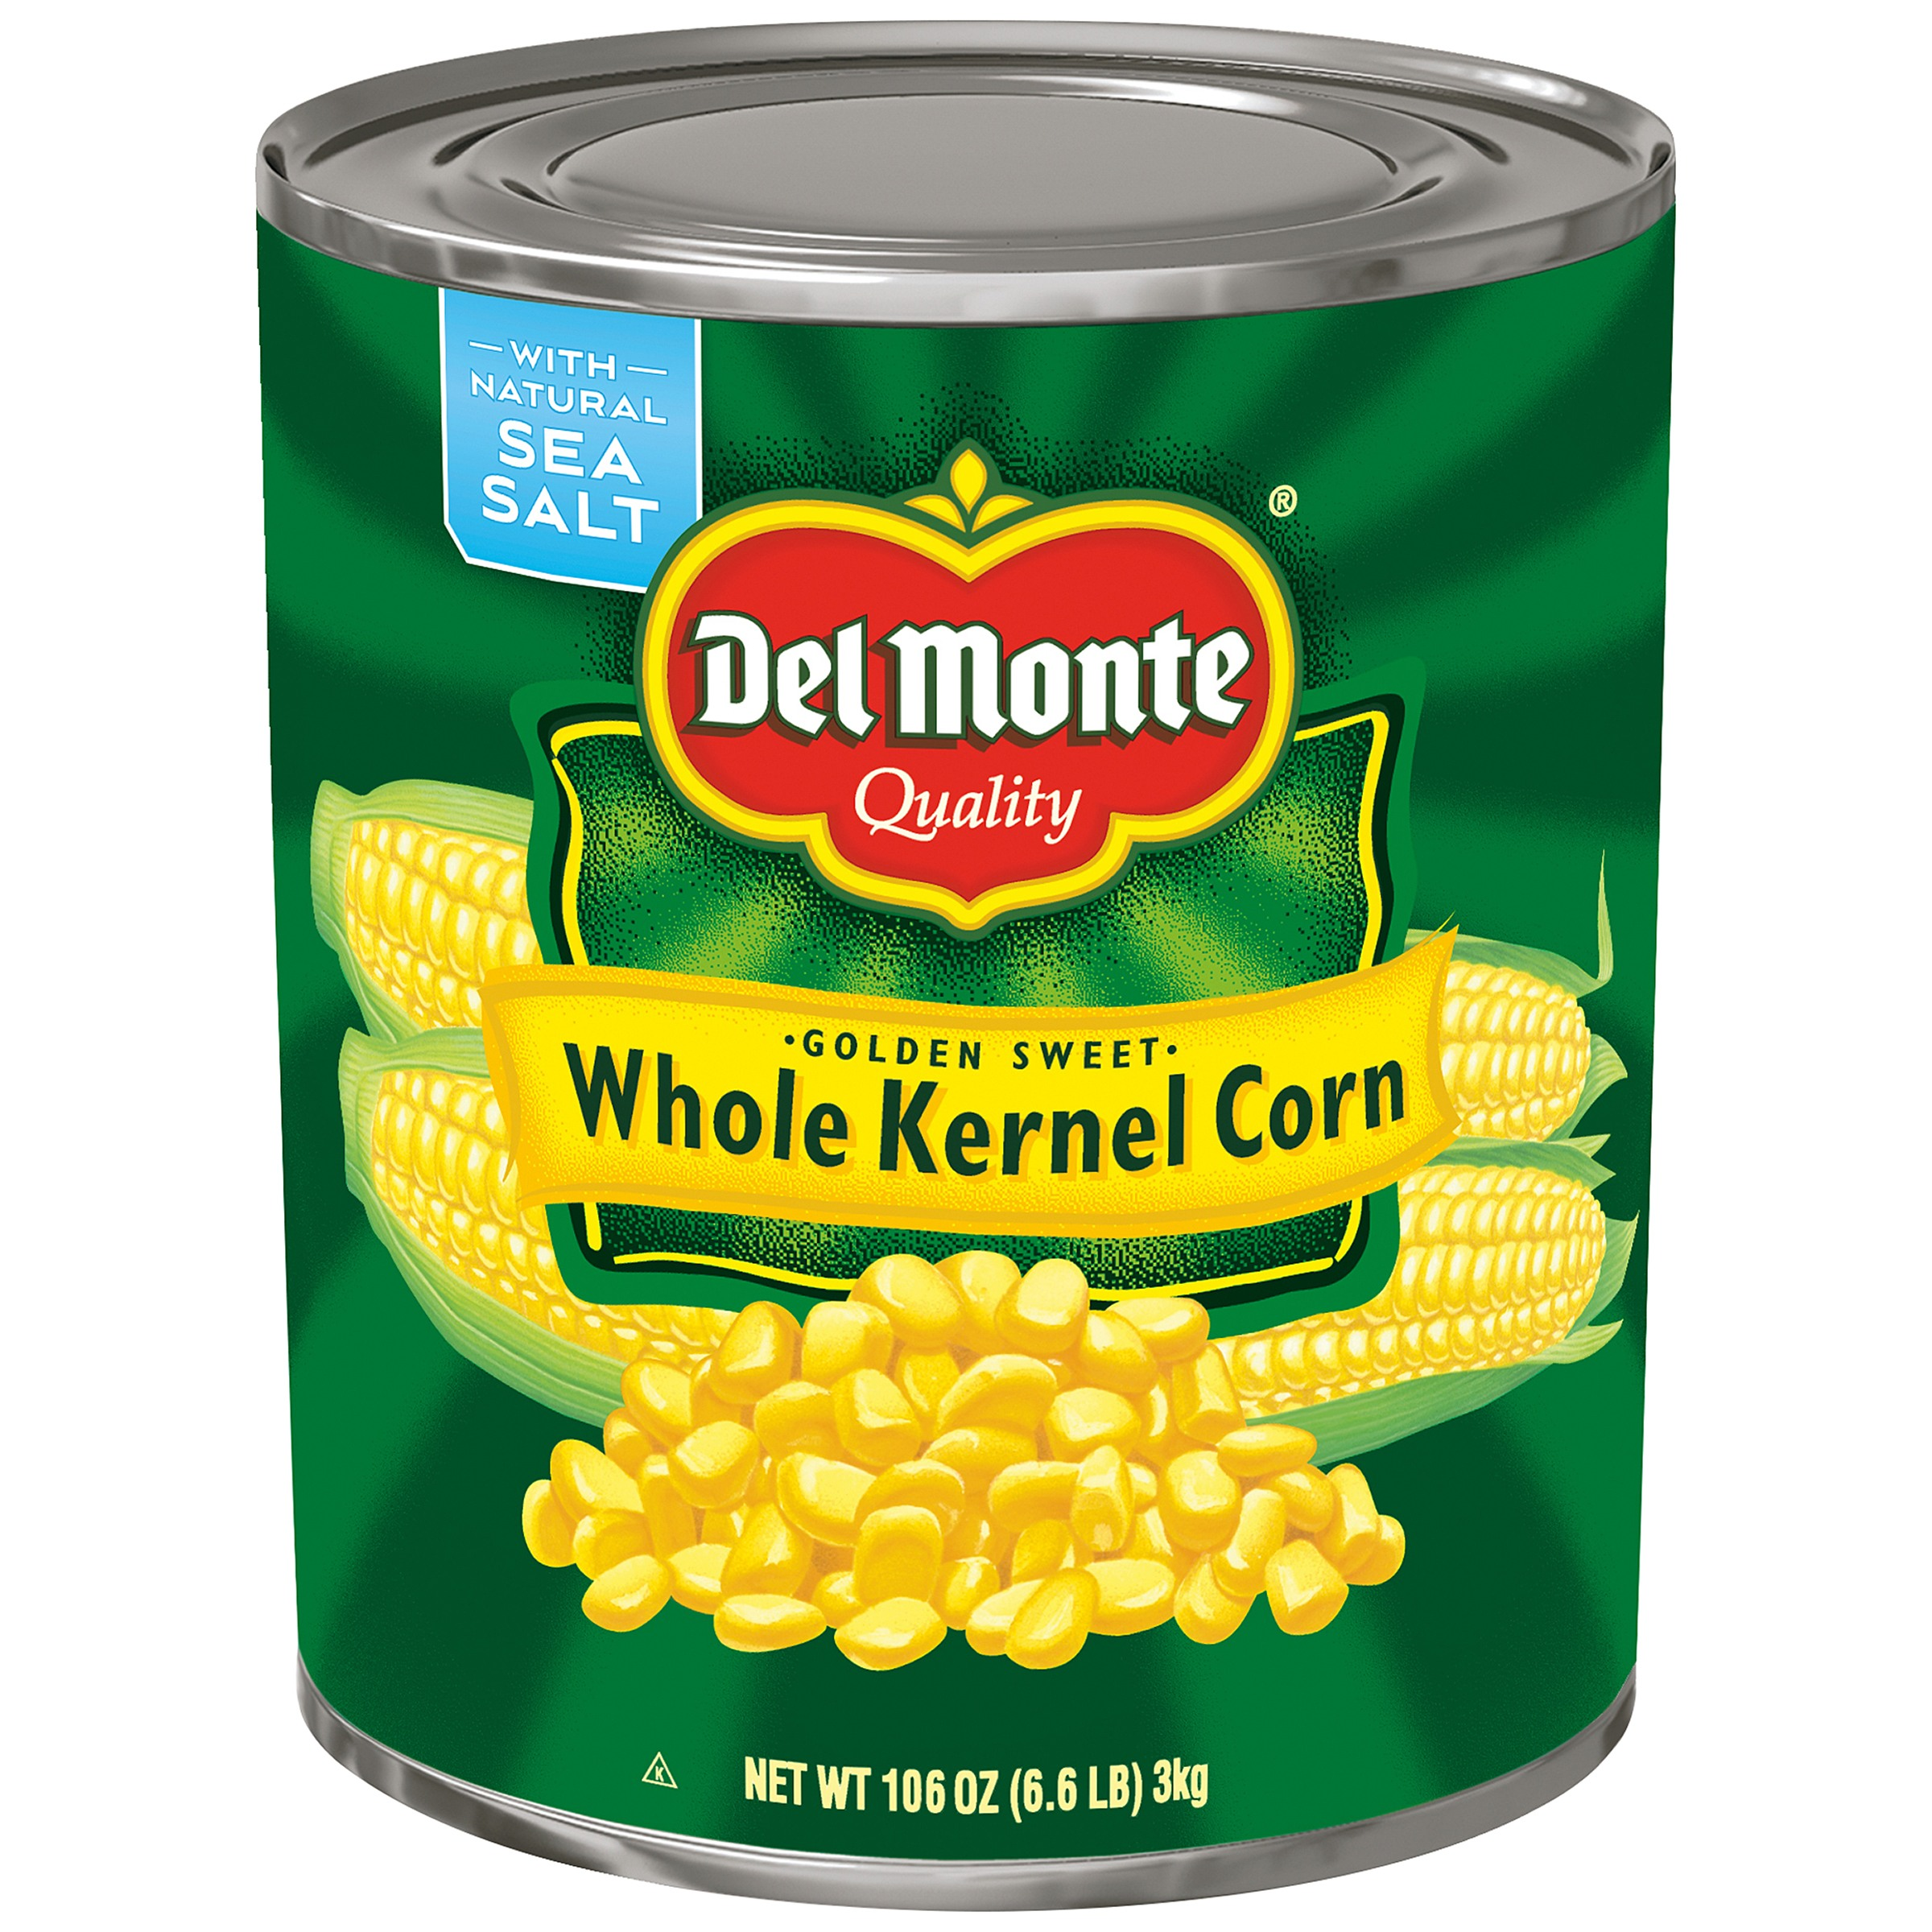 Del Monte Golden Sweet Whole Kernel Corn, 106 oz